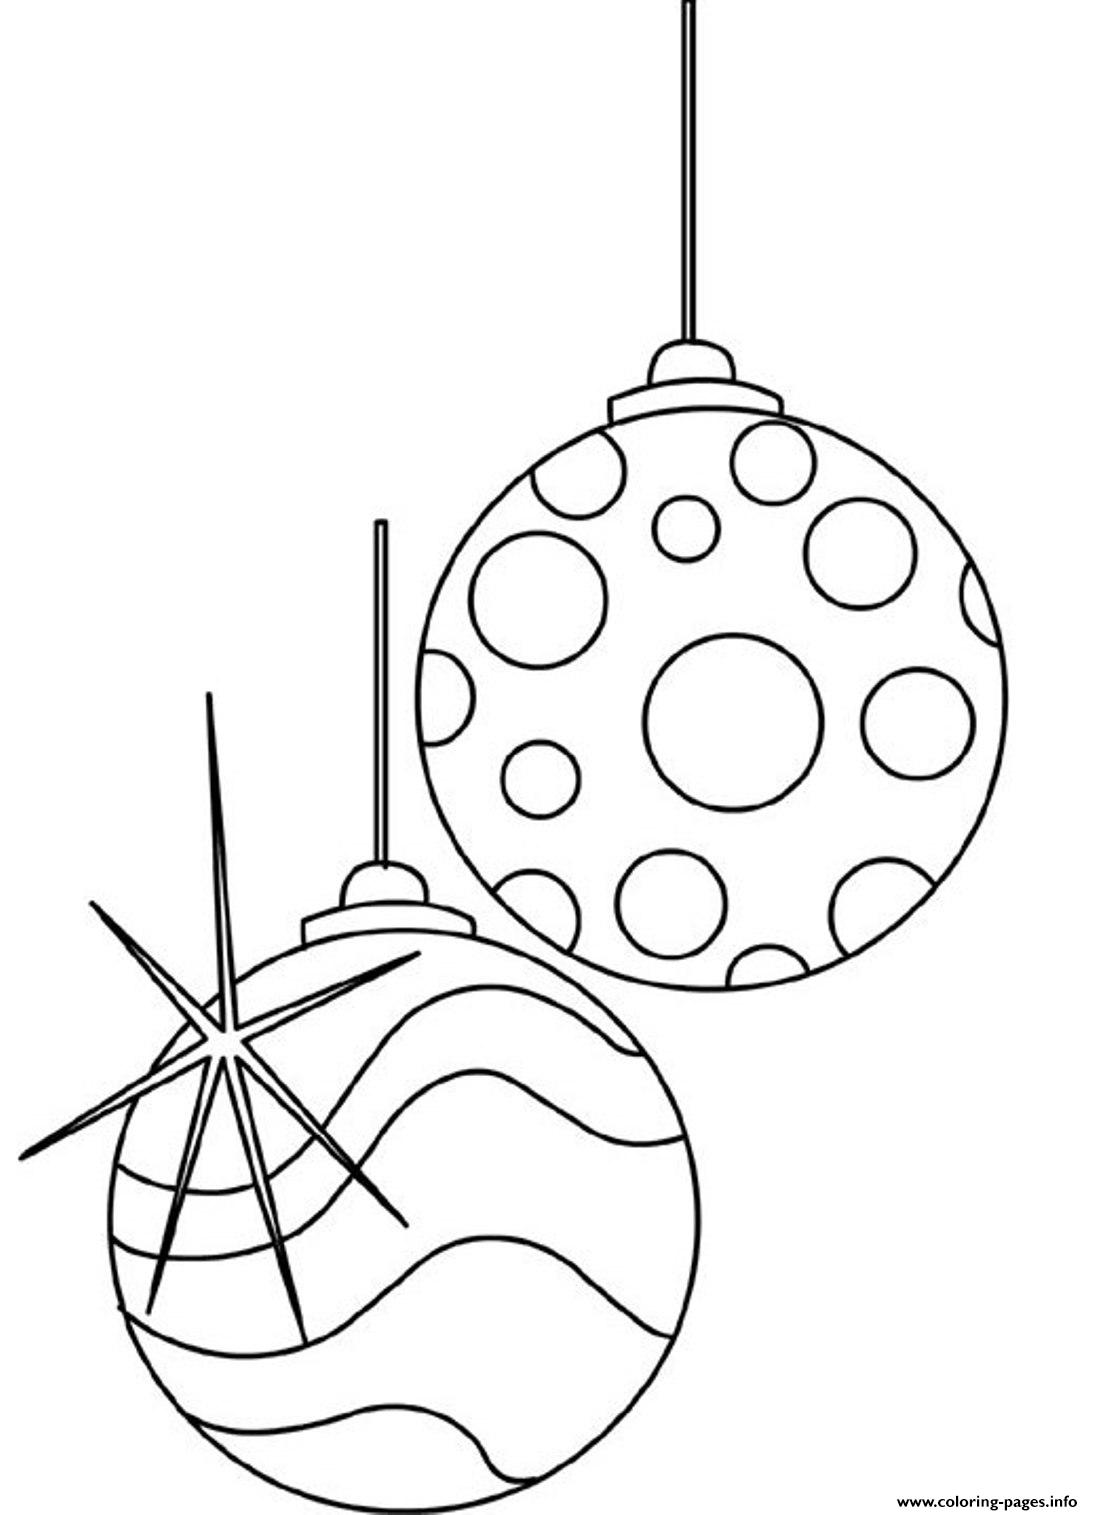 balls ornaments christmas printable s3d4e coloring pages